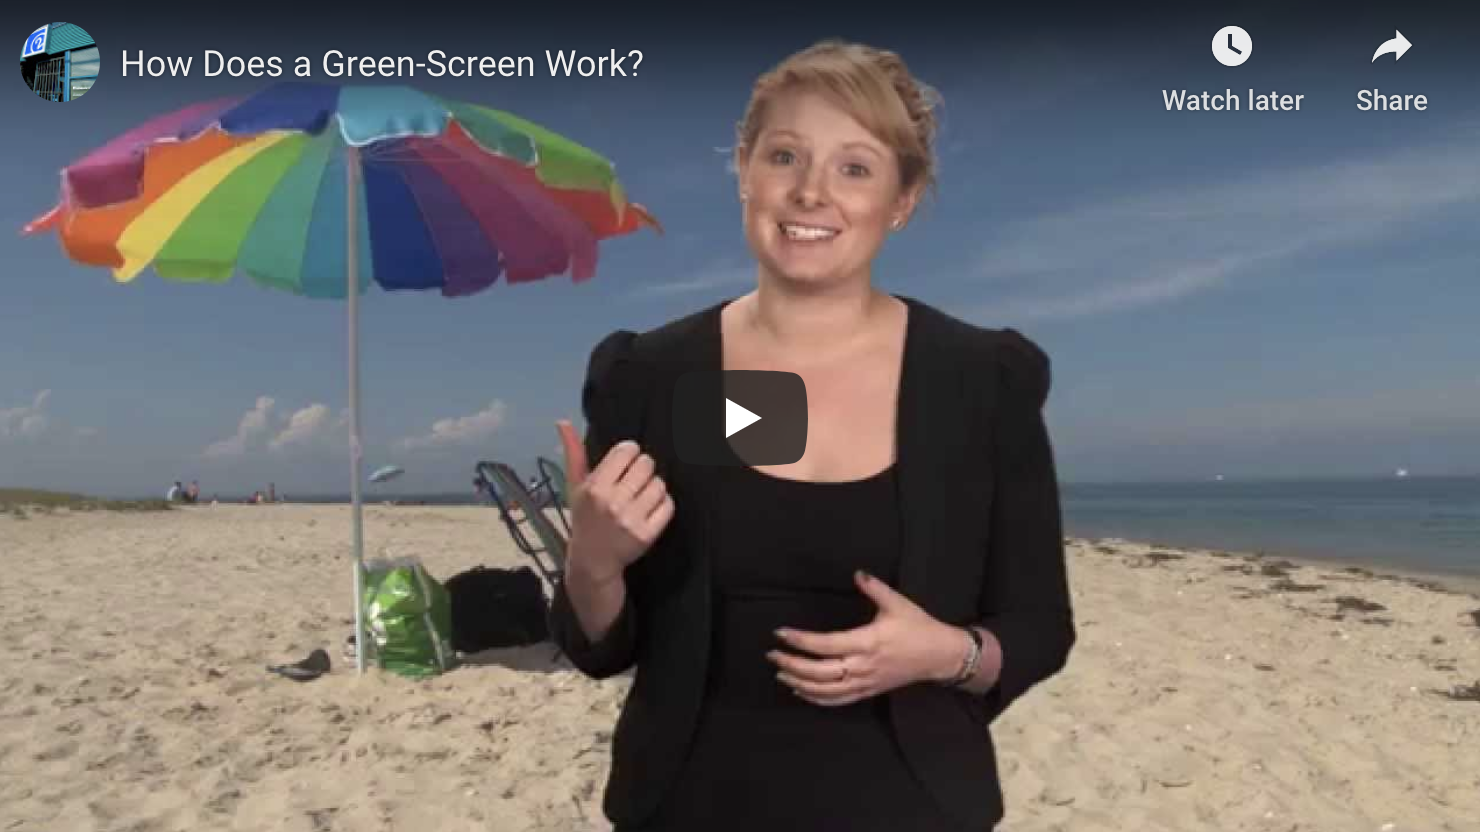 How Does a Green Screen Work